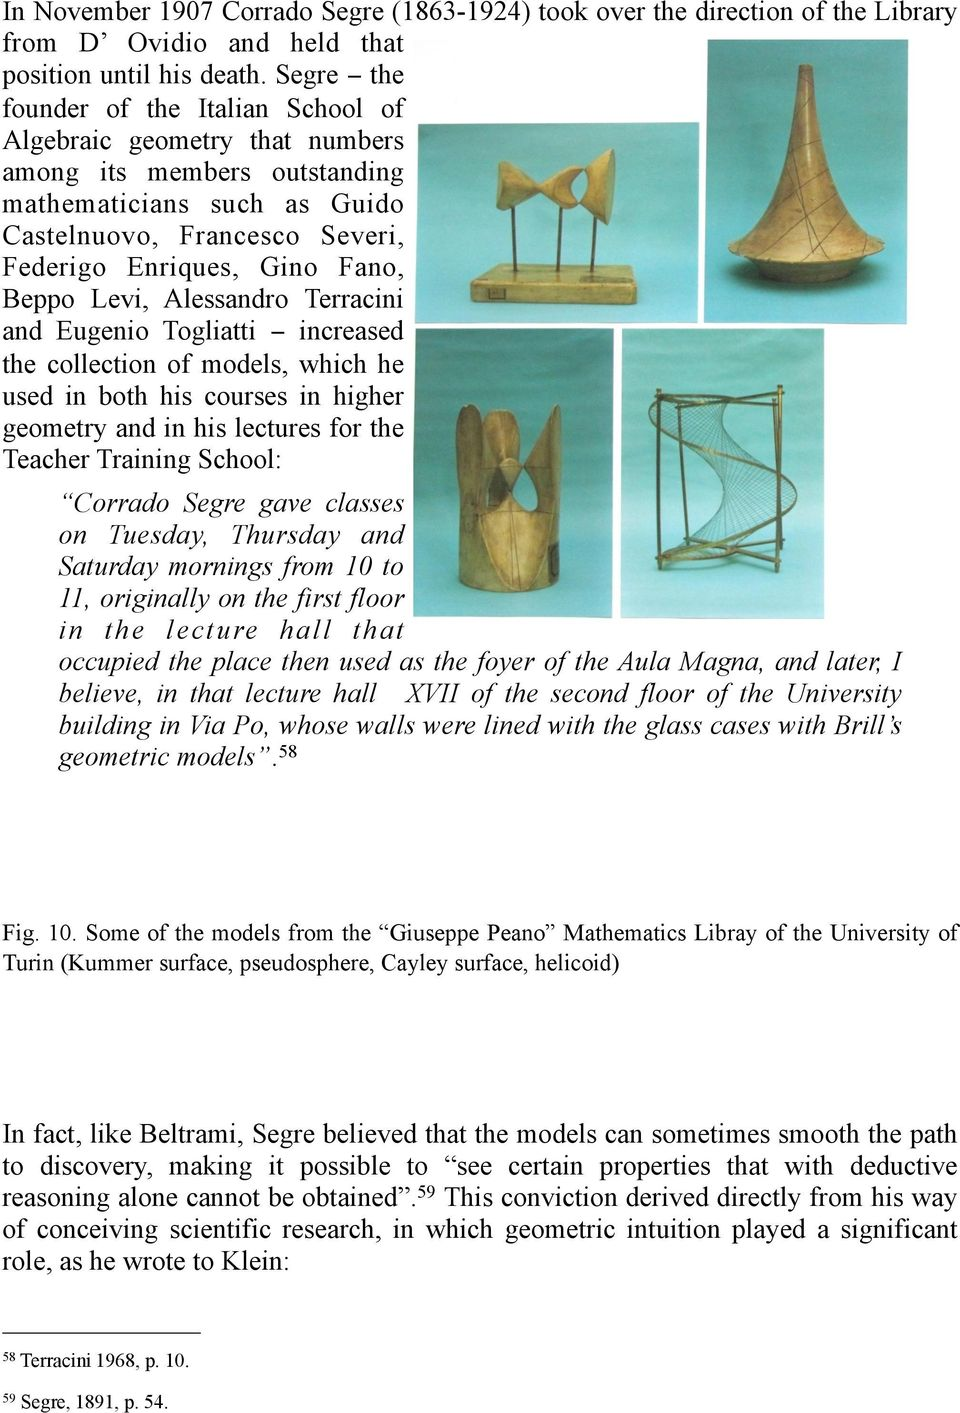 Beppo Levi, Alessandro Terracini and Eugenio Togliatti increased the collection of models, which he used in both his courses in higher geometry and in his lectures for the Teacher Training School: